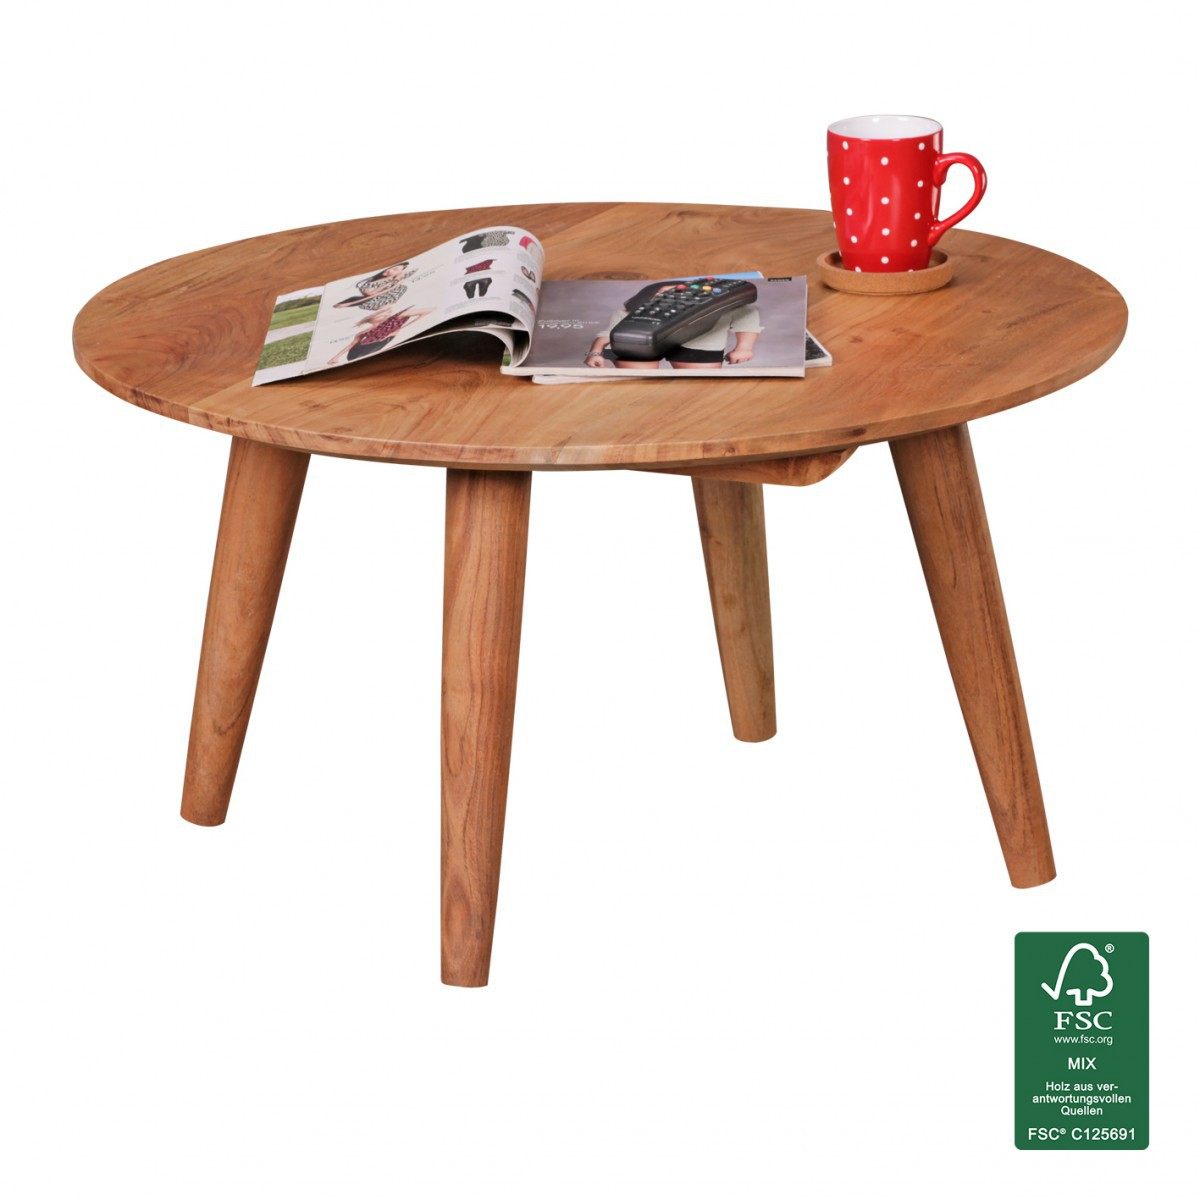 Finebuy table basse en bois massif acacia table basse - Table bois massif contemporaine ...